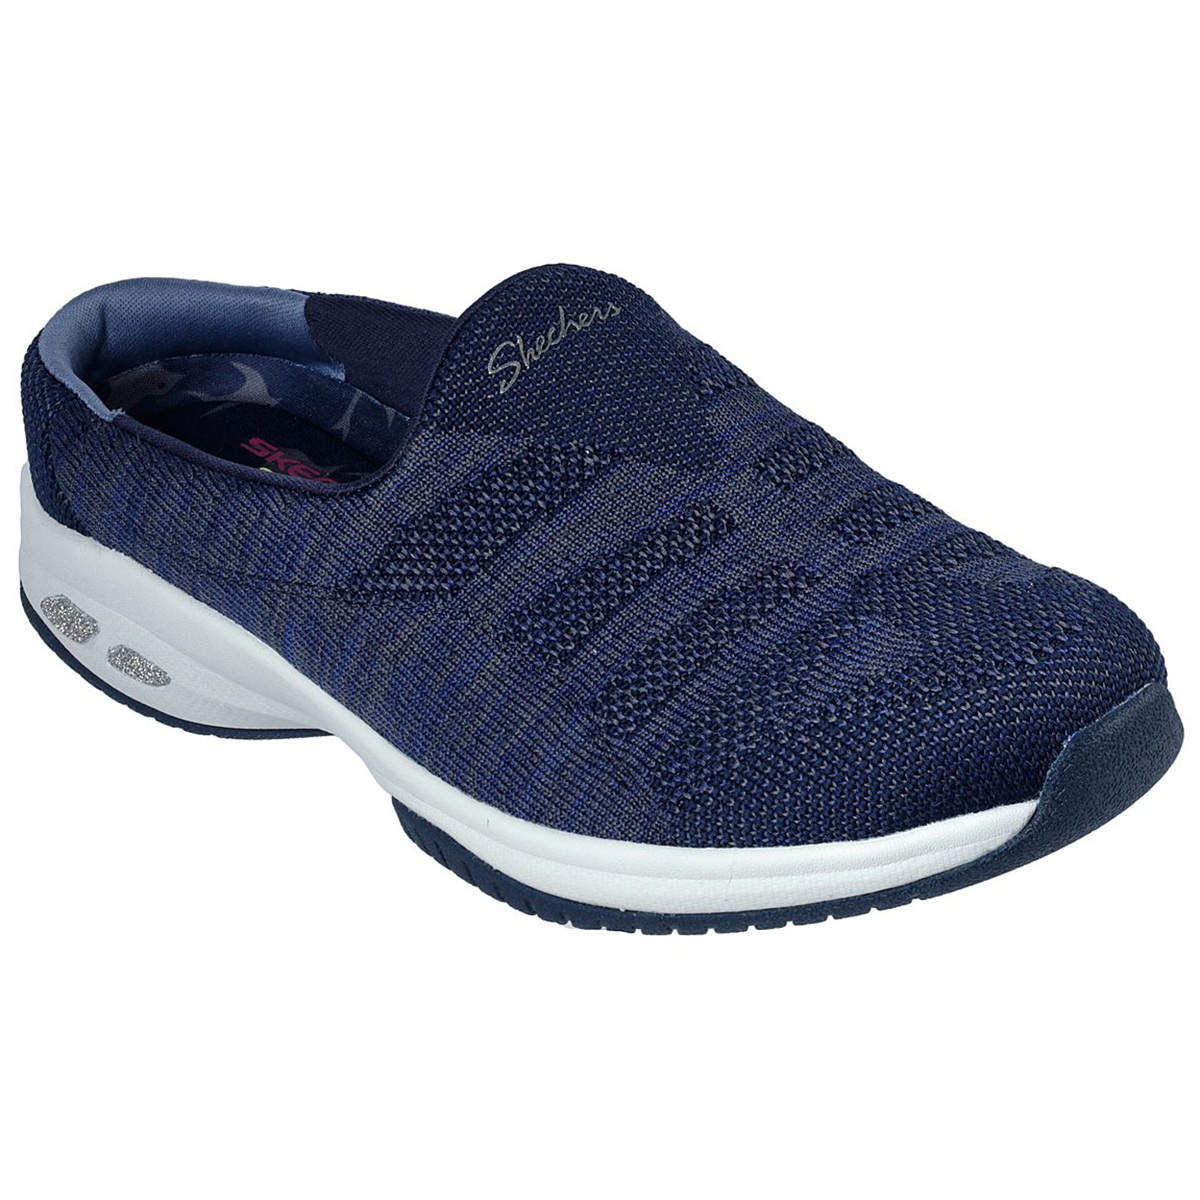 Skechers Women's Commute Knitastic Clog Seakers - Blue, 7.5